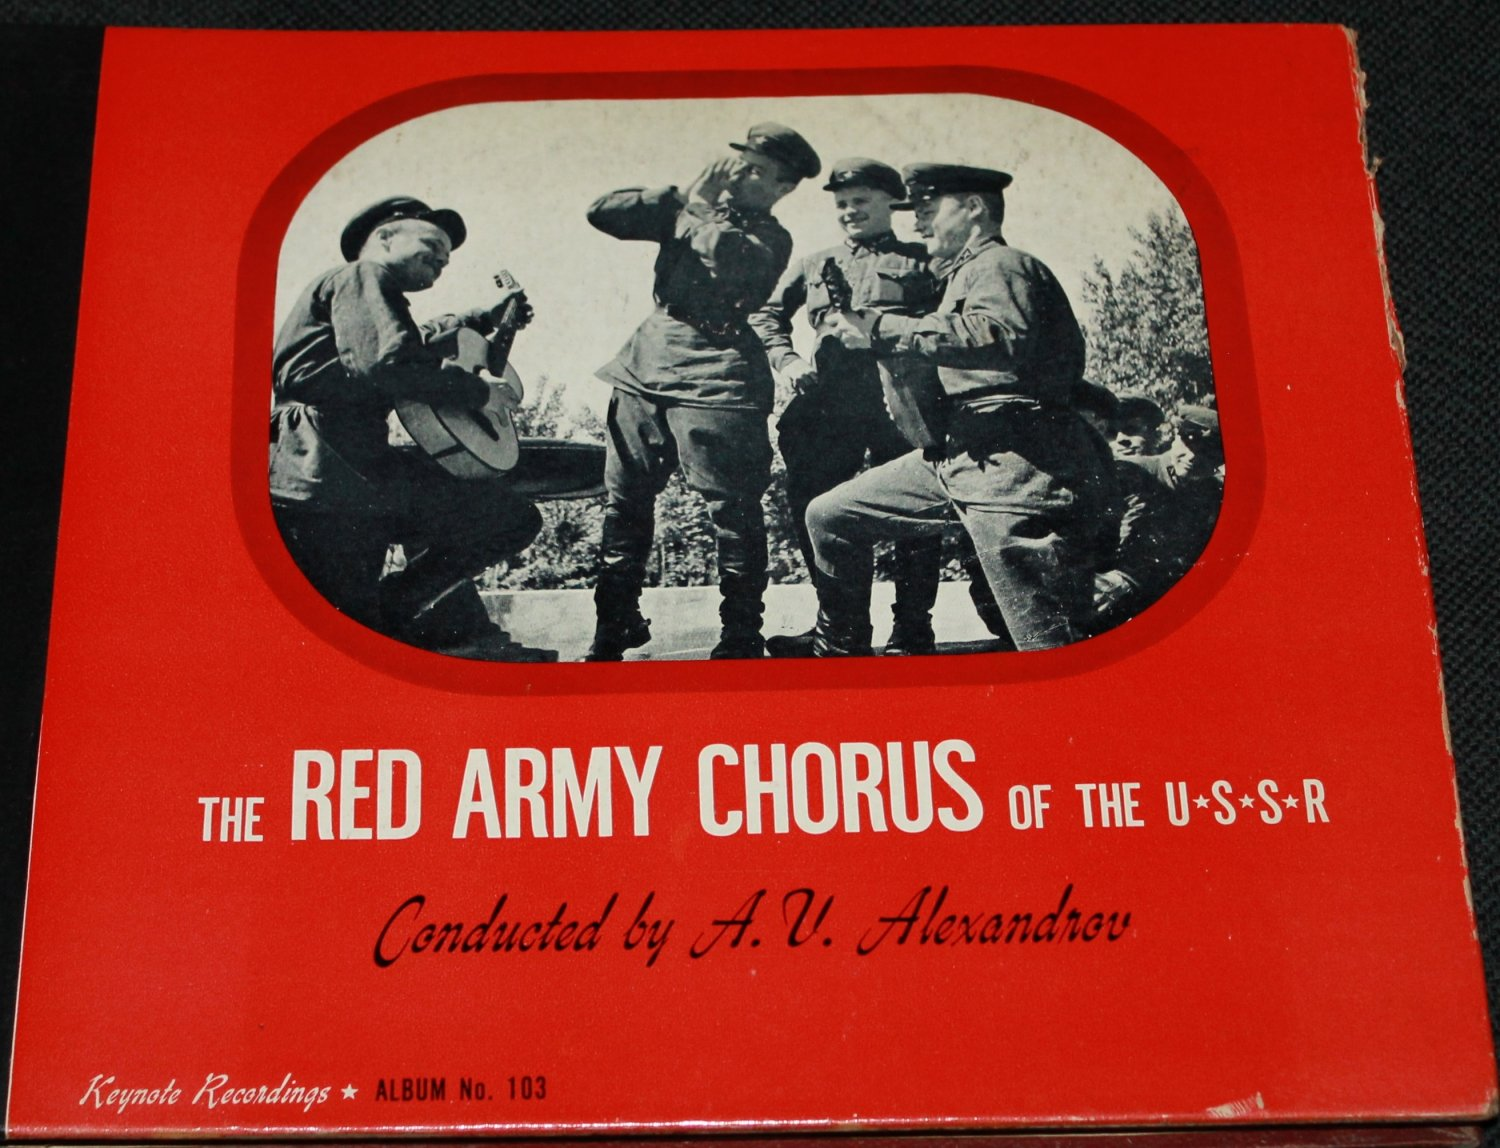 The Red Army Chorus - conducted by A.V. Alexandrov Keynotes Recordings Album No. 103